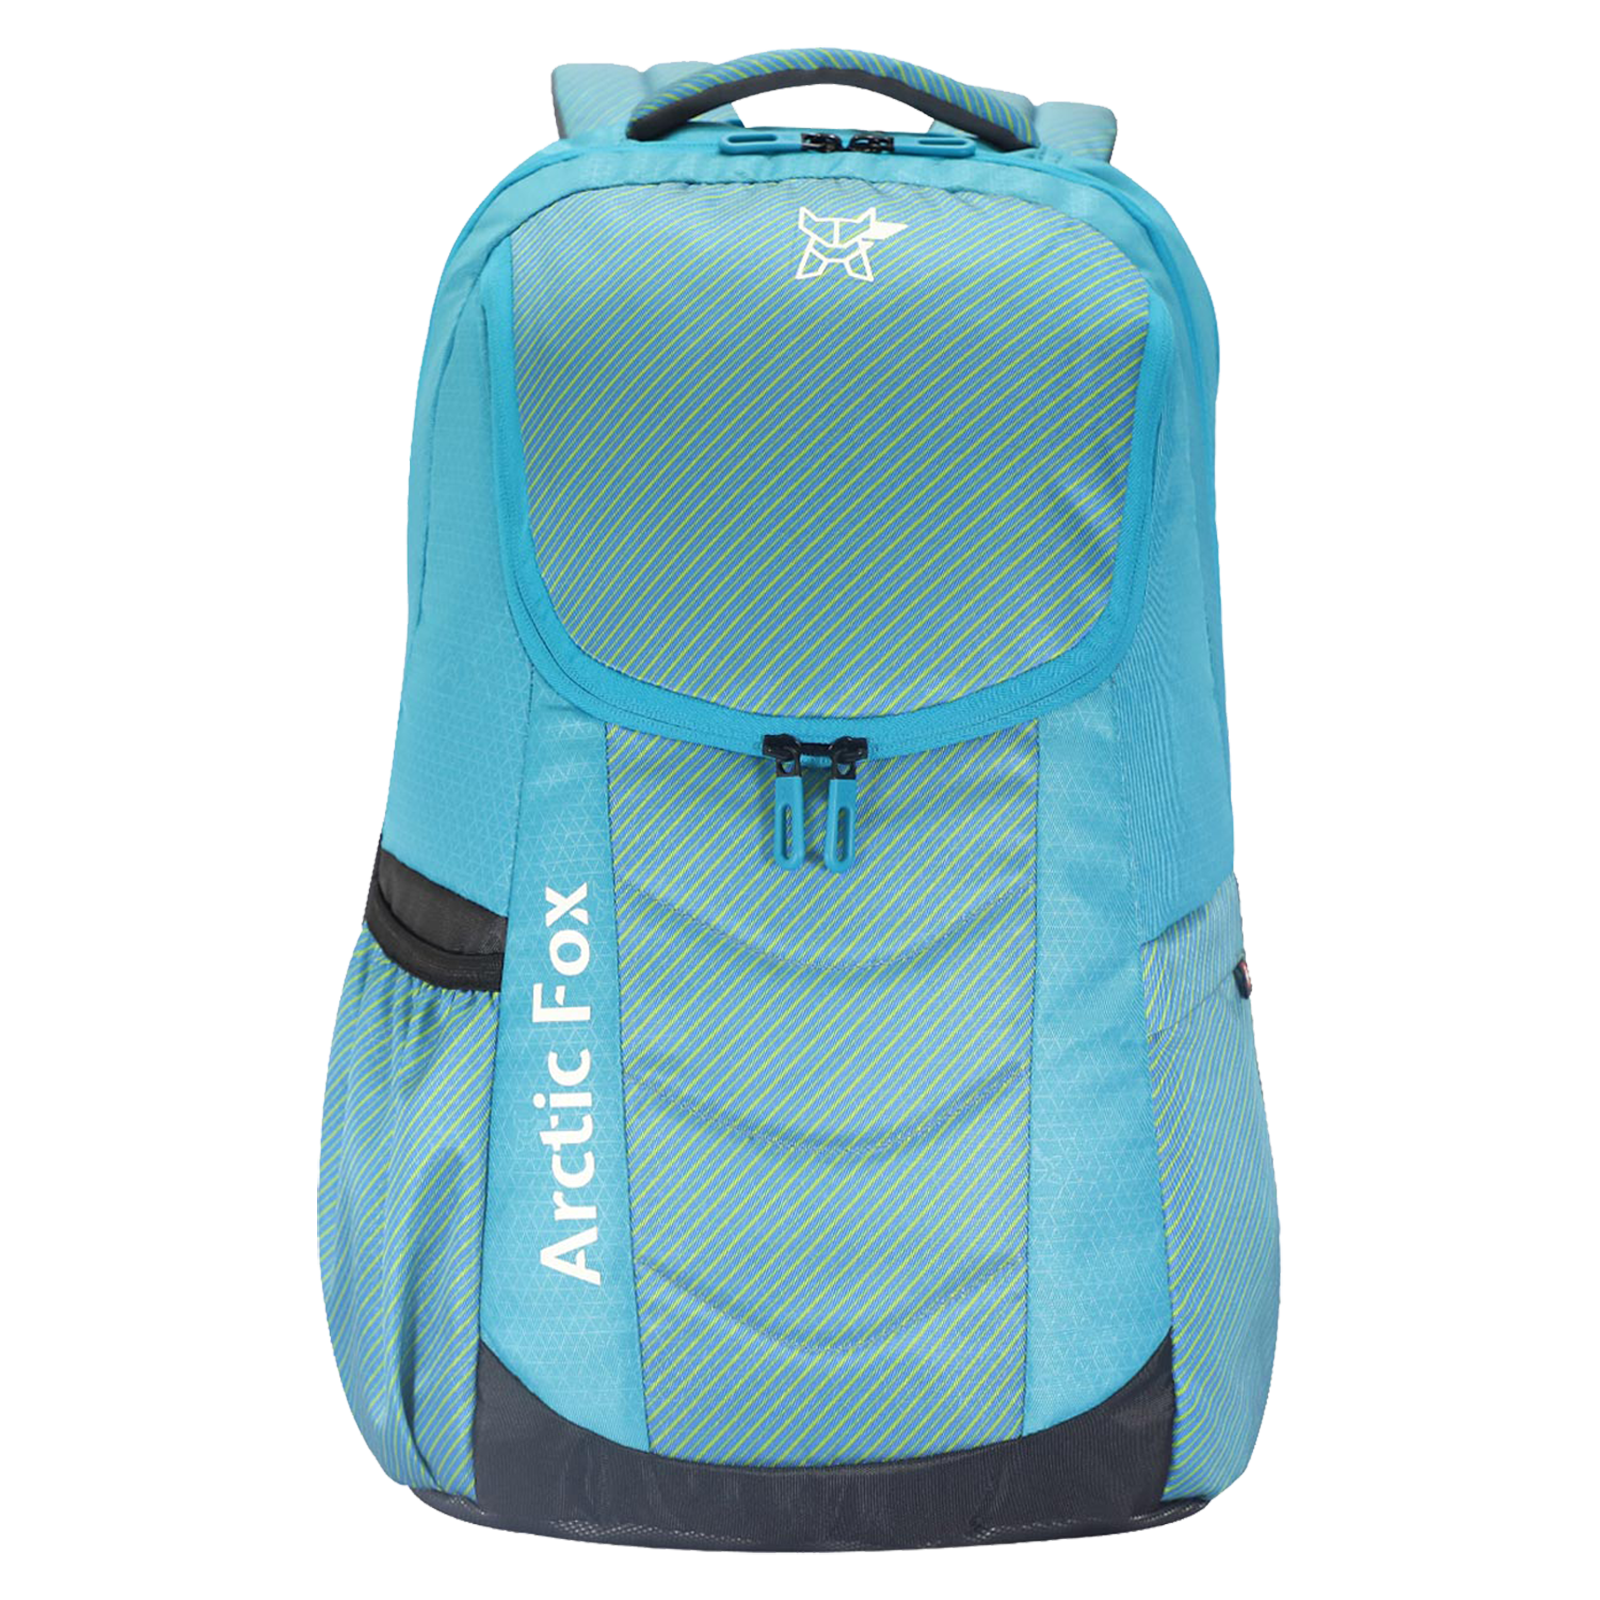 Arctic Fox Combat 37 Litres PU Coated Polyester Backpack (3 Spacious Compartments, FTEBPKCBNON071037, Caribbean Sea)_1